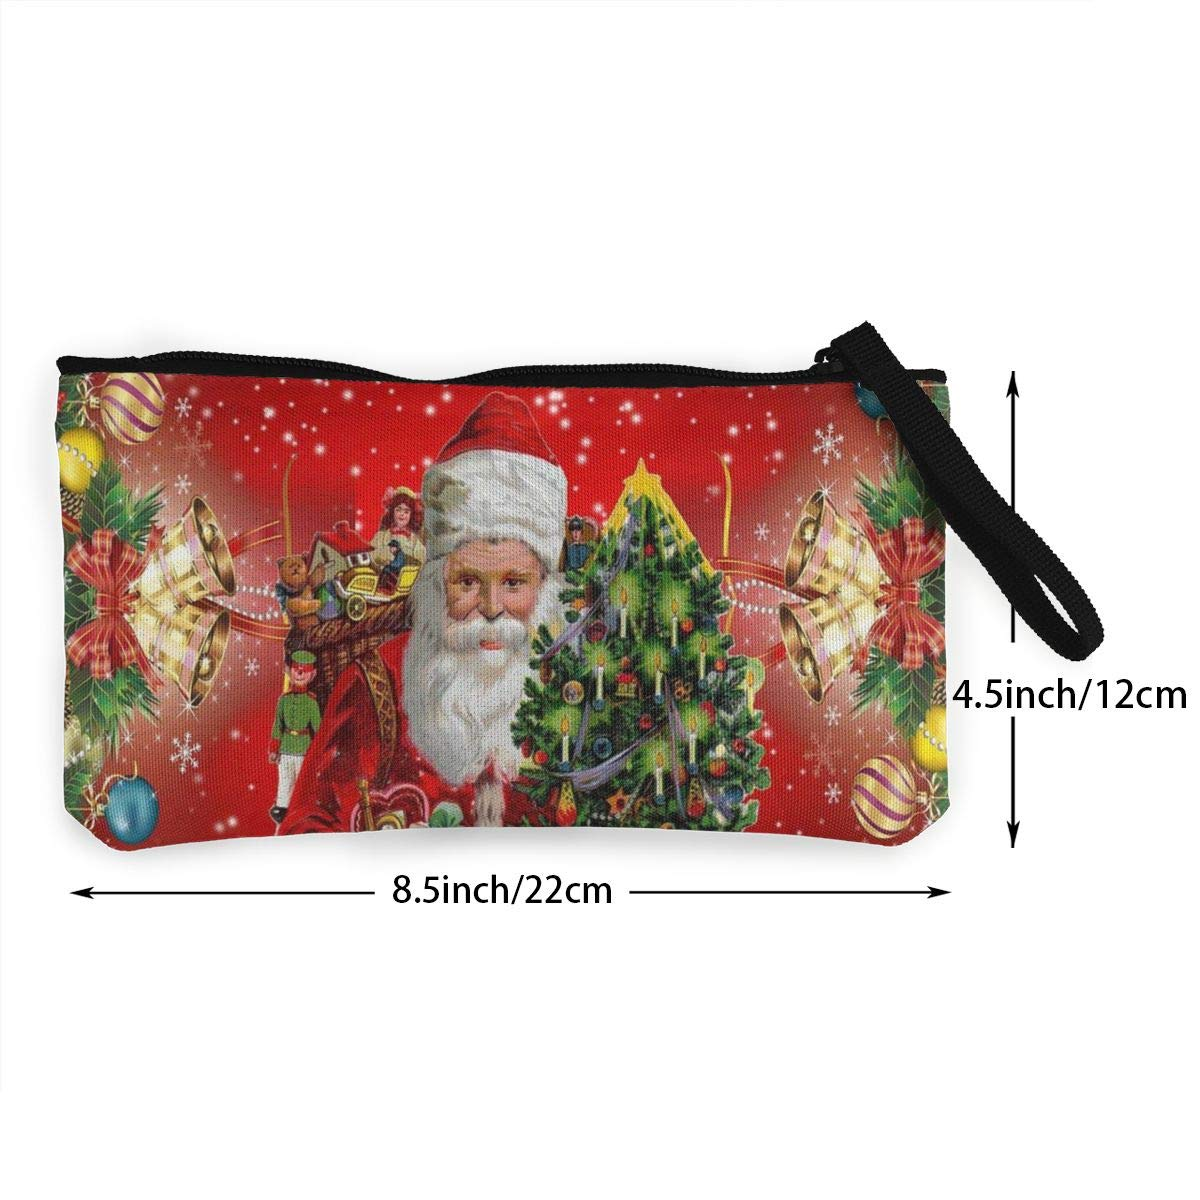 YUANSHAN Merry Christmas Tree Unisex Canvas Coin Purse Change Cash Bag Zipper Small Purse Wallets with Handle